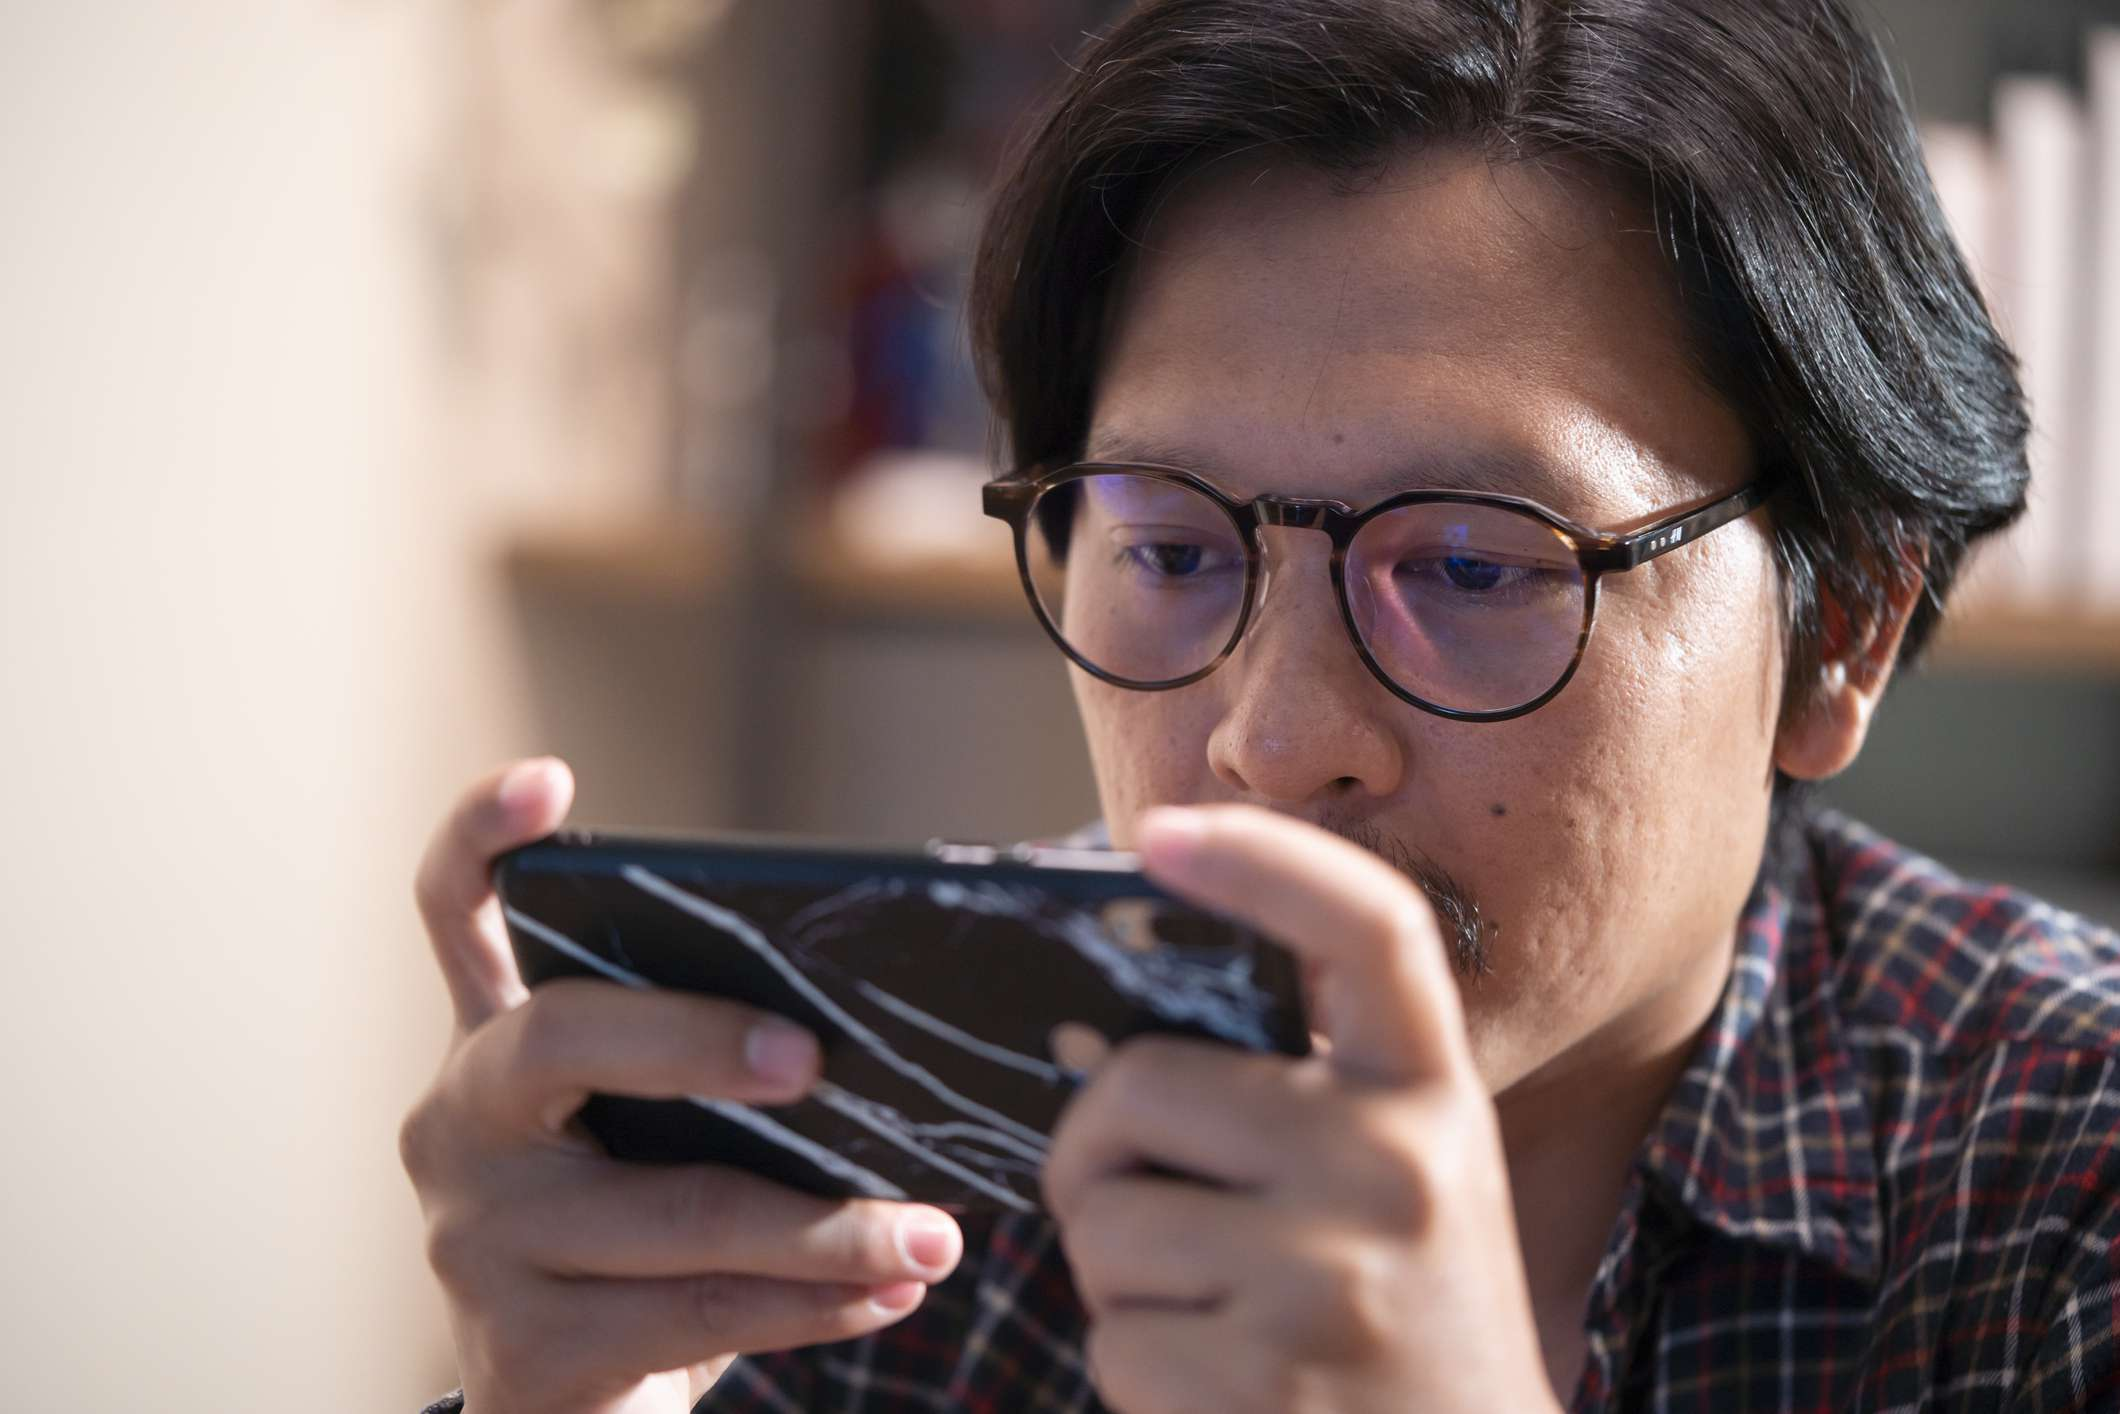 Leisure gamer plays action video game on mobile phone.